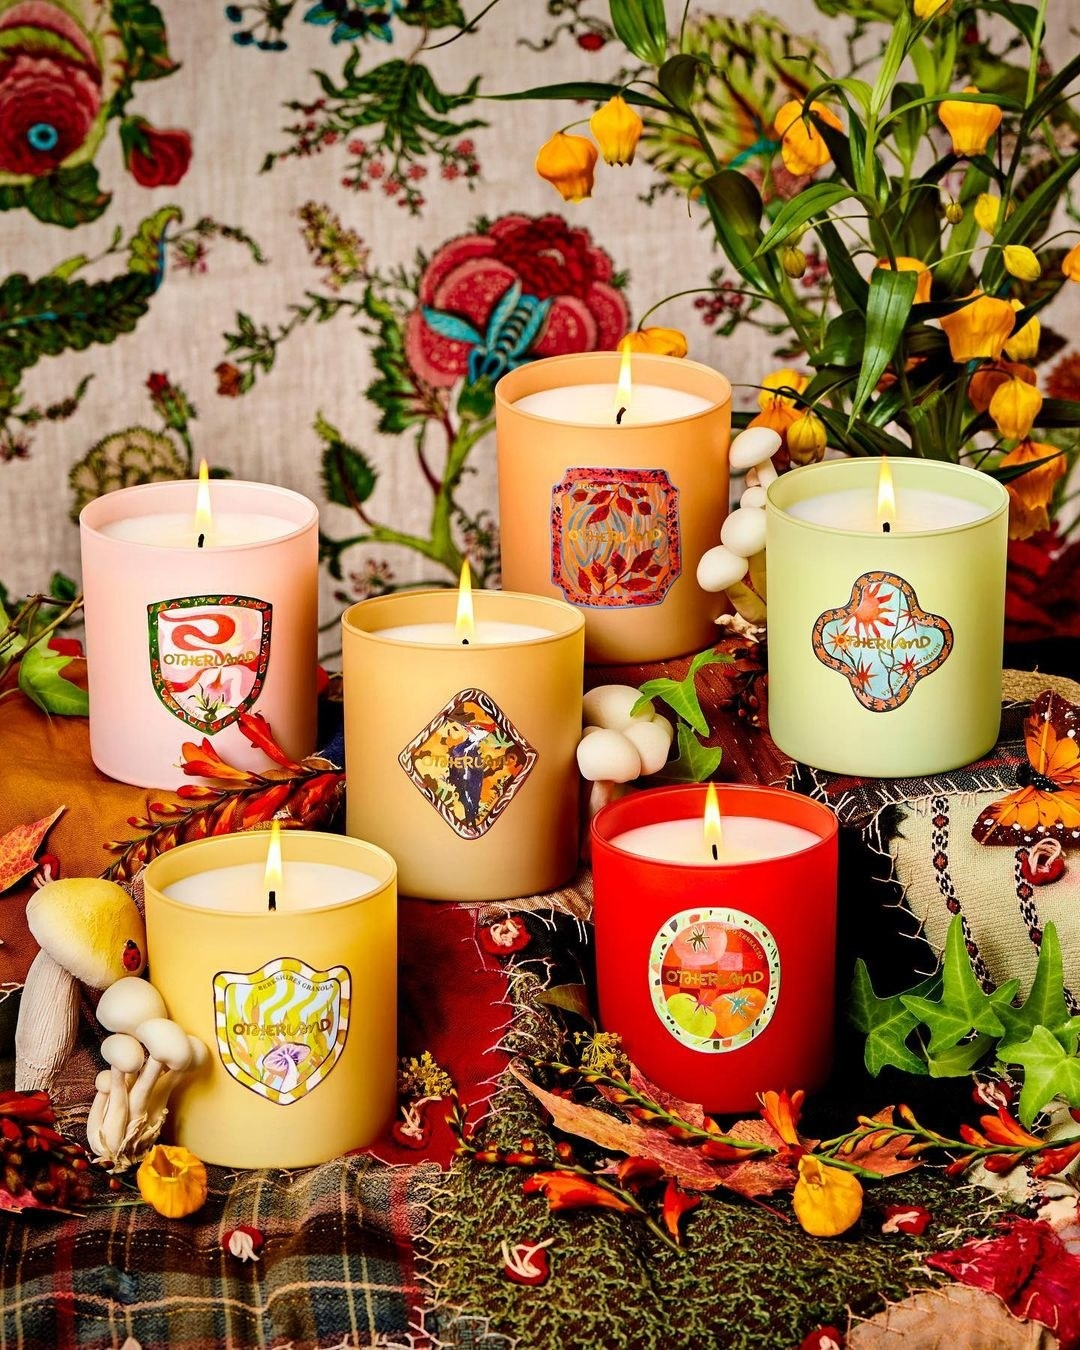 The autumnland candle collection